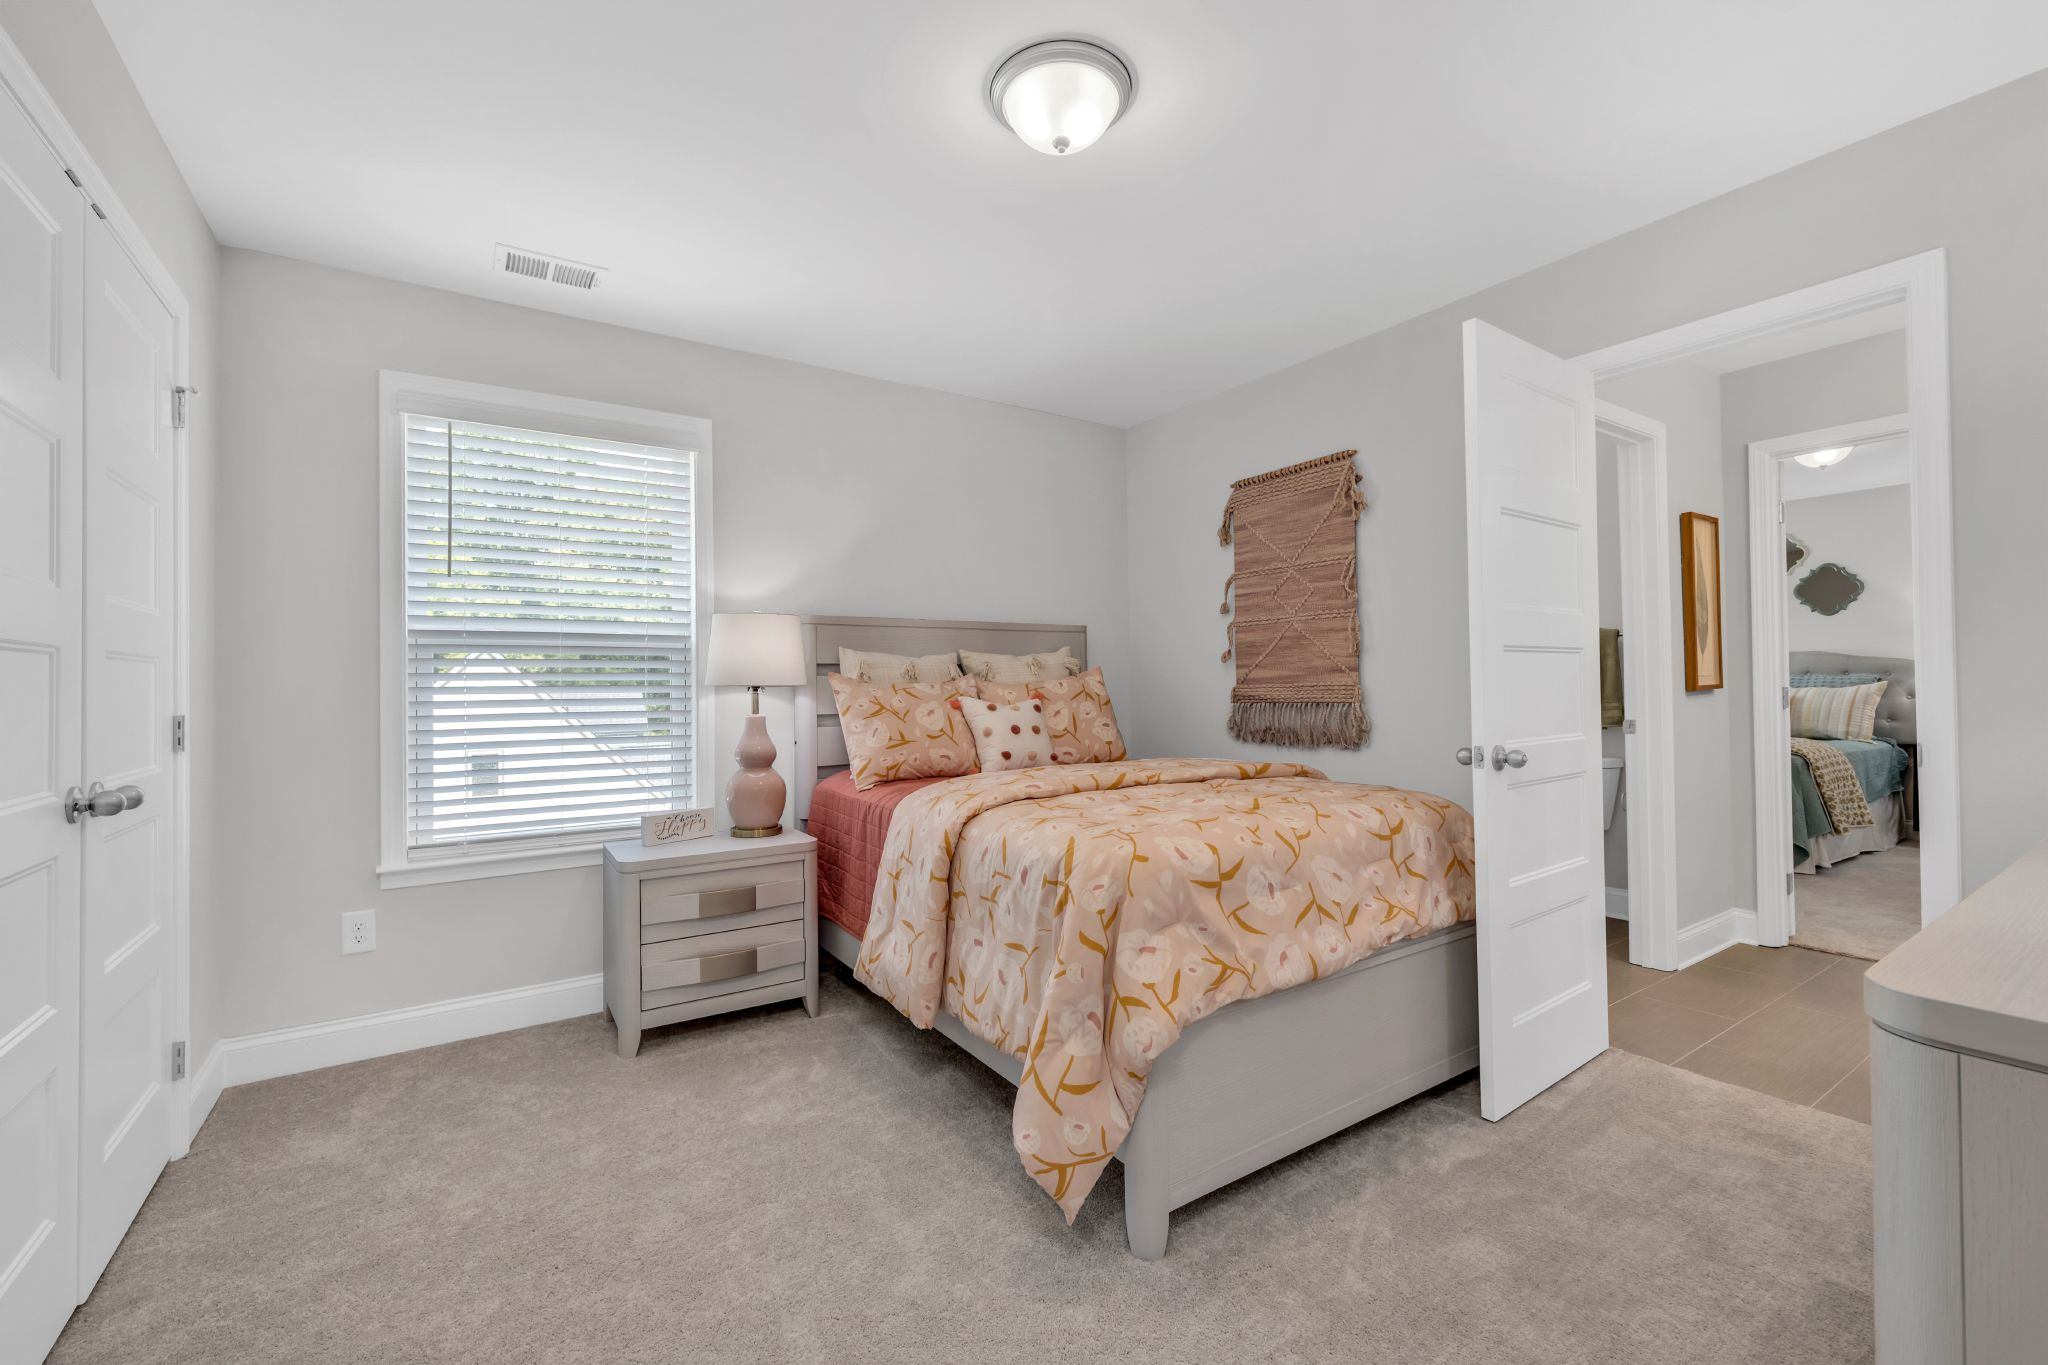 Bedroom featured in The Alexandria By Goodall Homes in Owensboro, KY